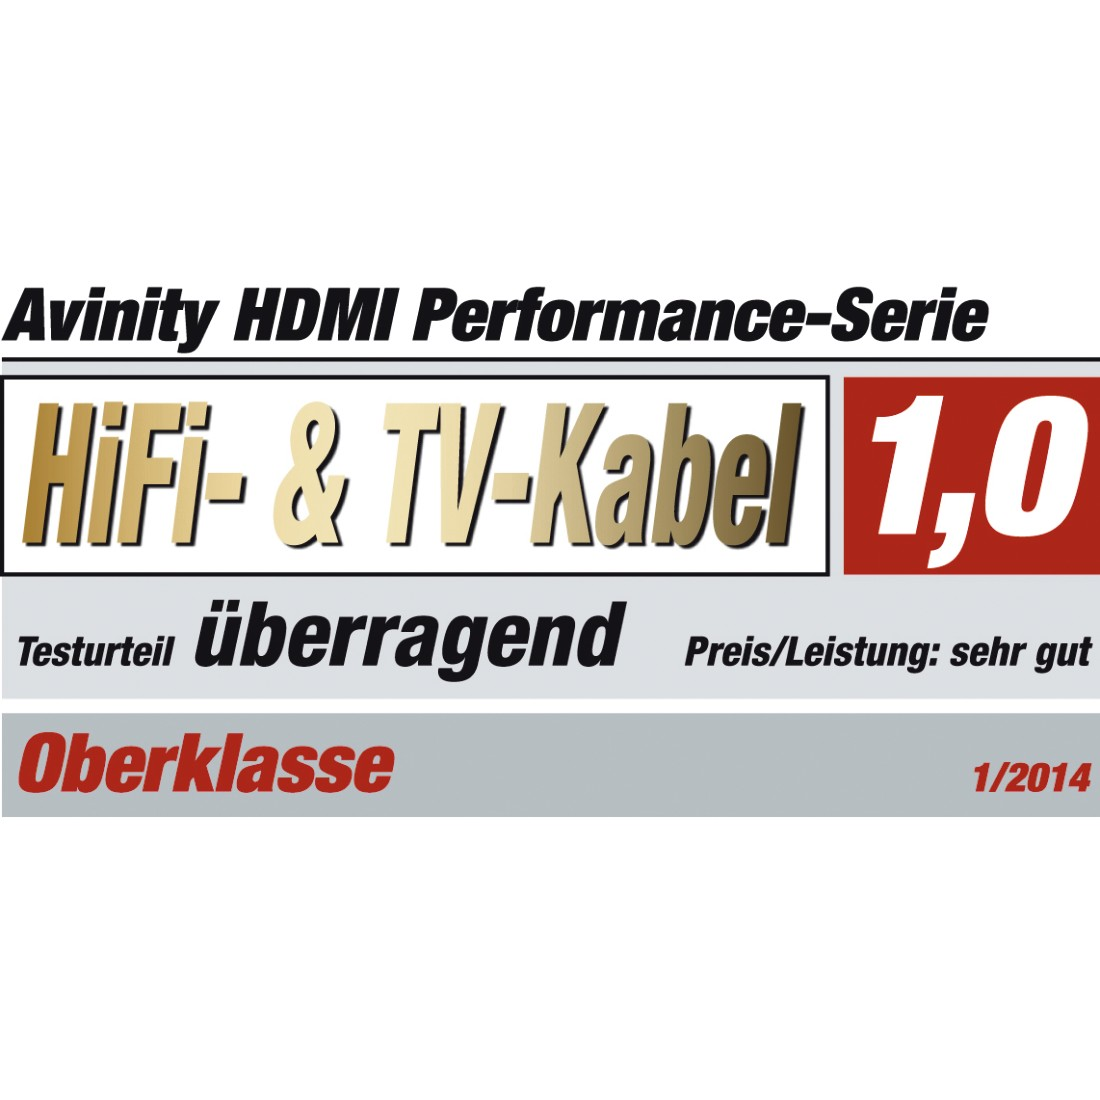 tex6 Druckfähiges Testurteil 6 - Avinity, High Speed HDMI™ Cable, Pl. - Pl., Fabric, Filter, gold-plated,Ethernet,7 m